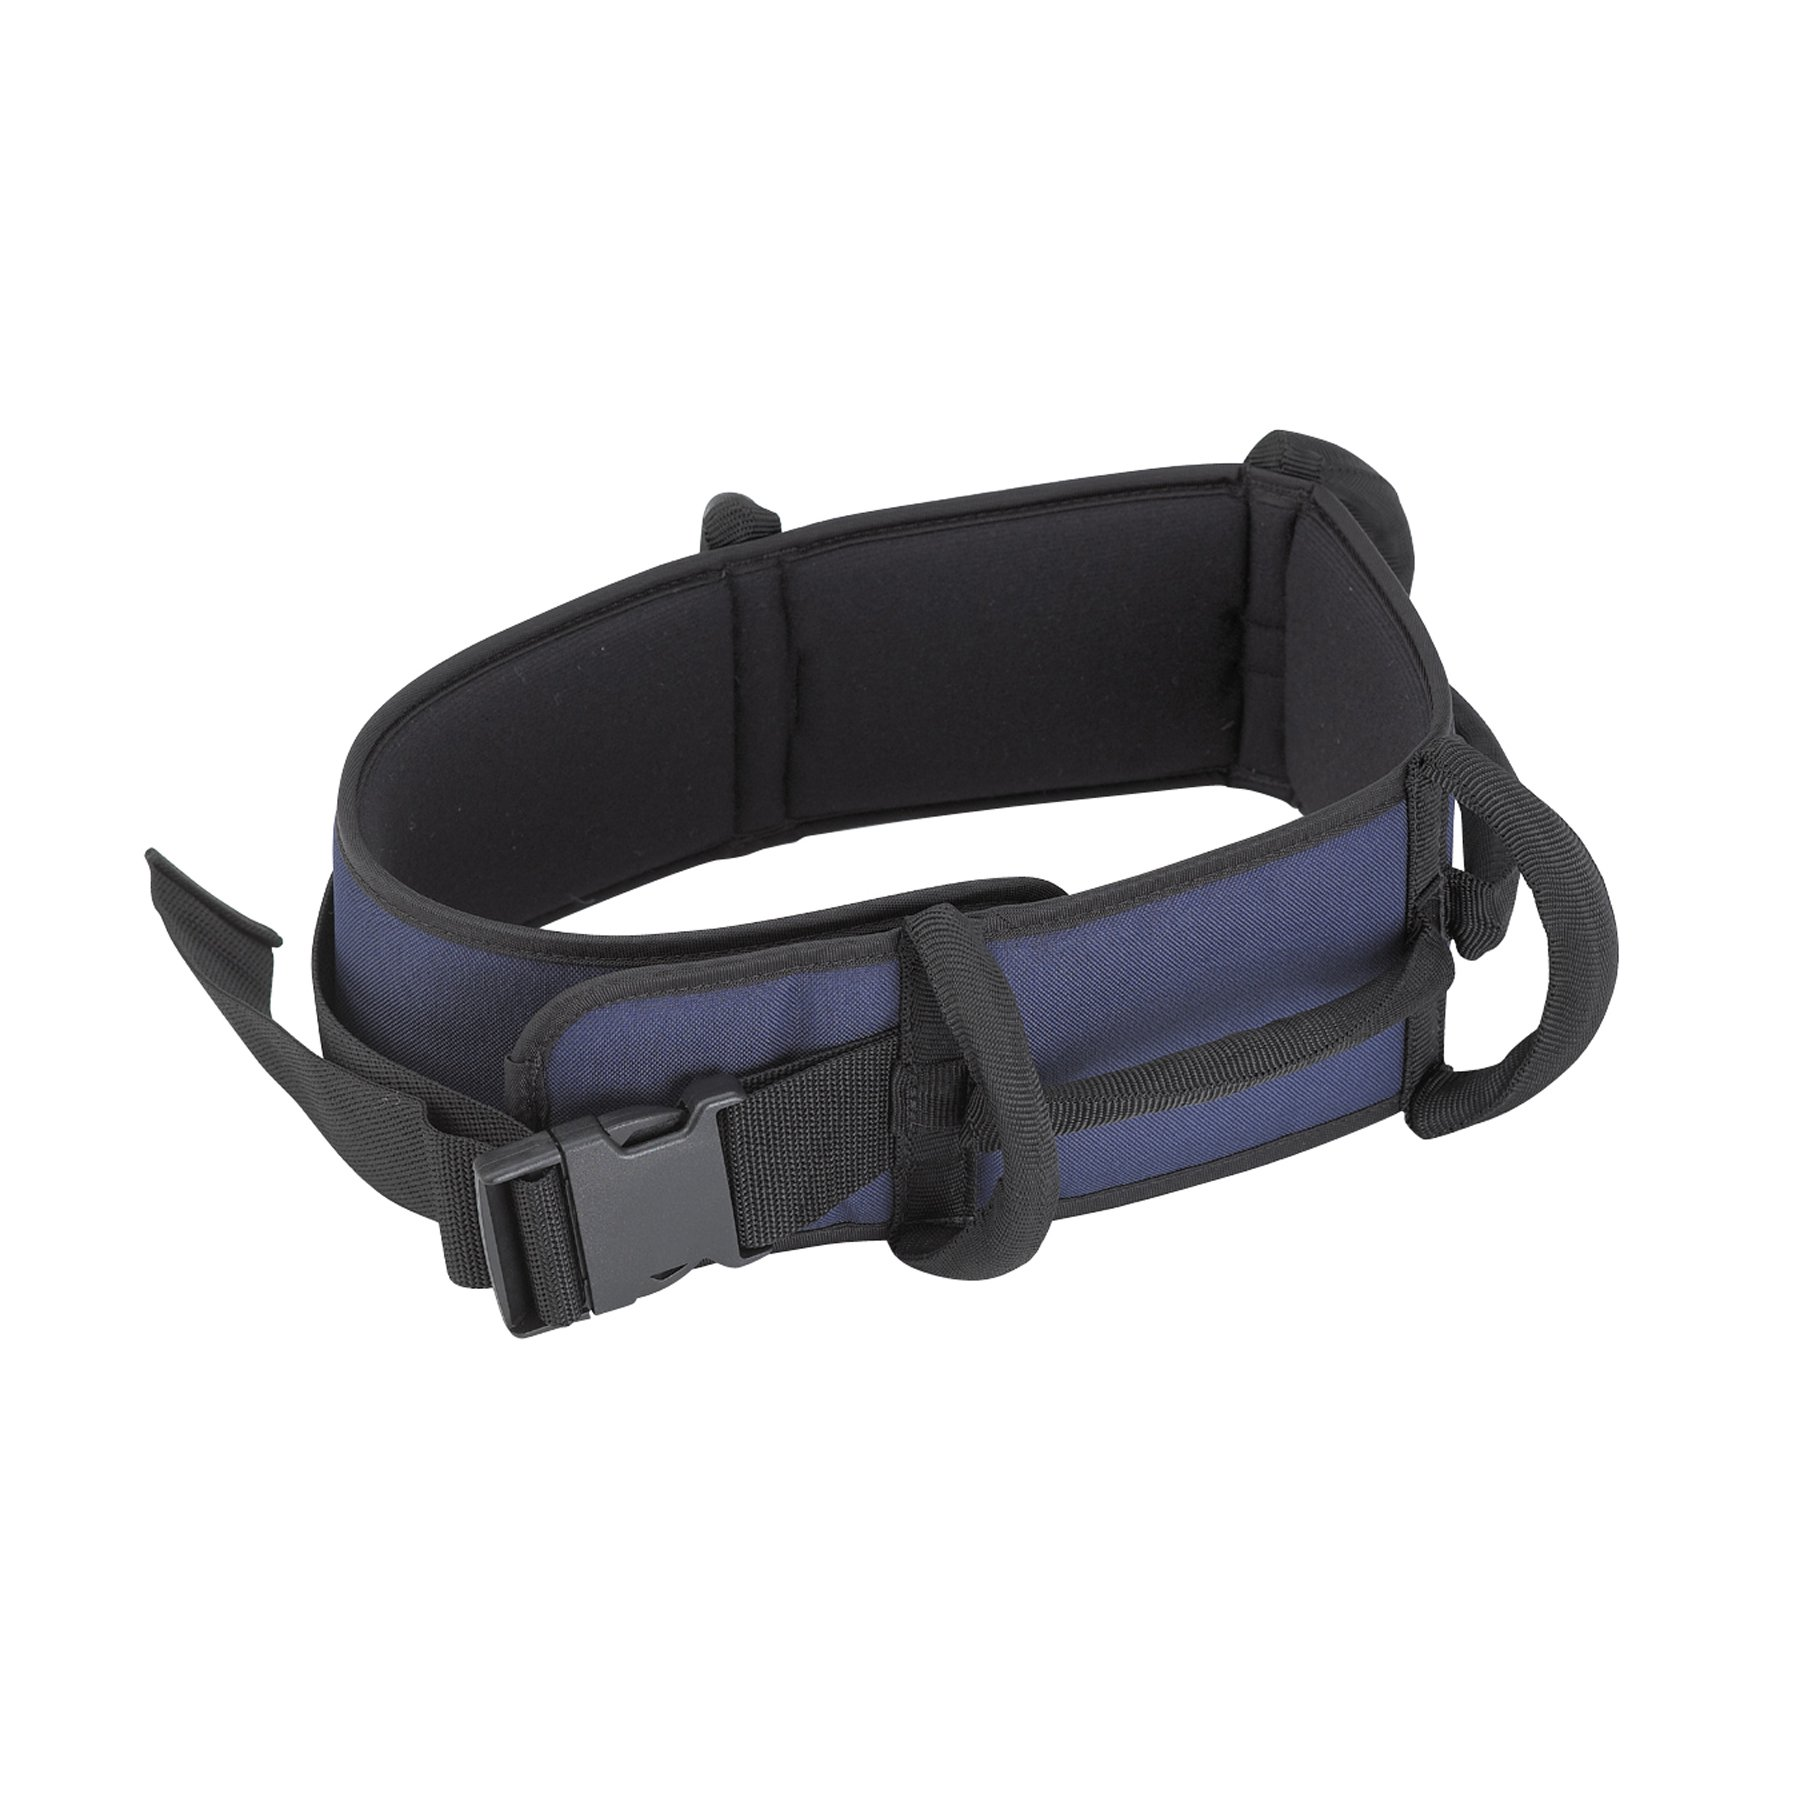 Drive Medical Lifestyle Padded Transfer Belt, Small by Drive Medical